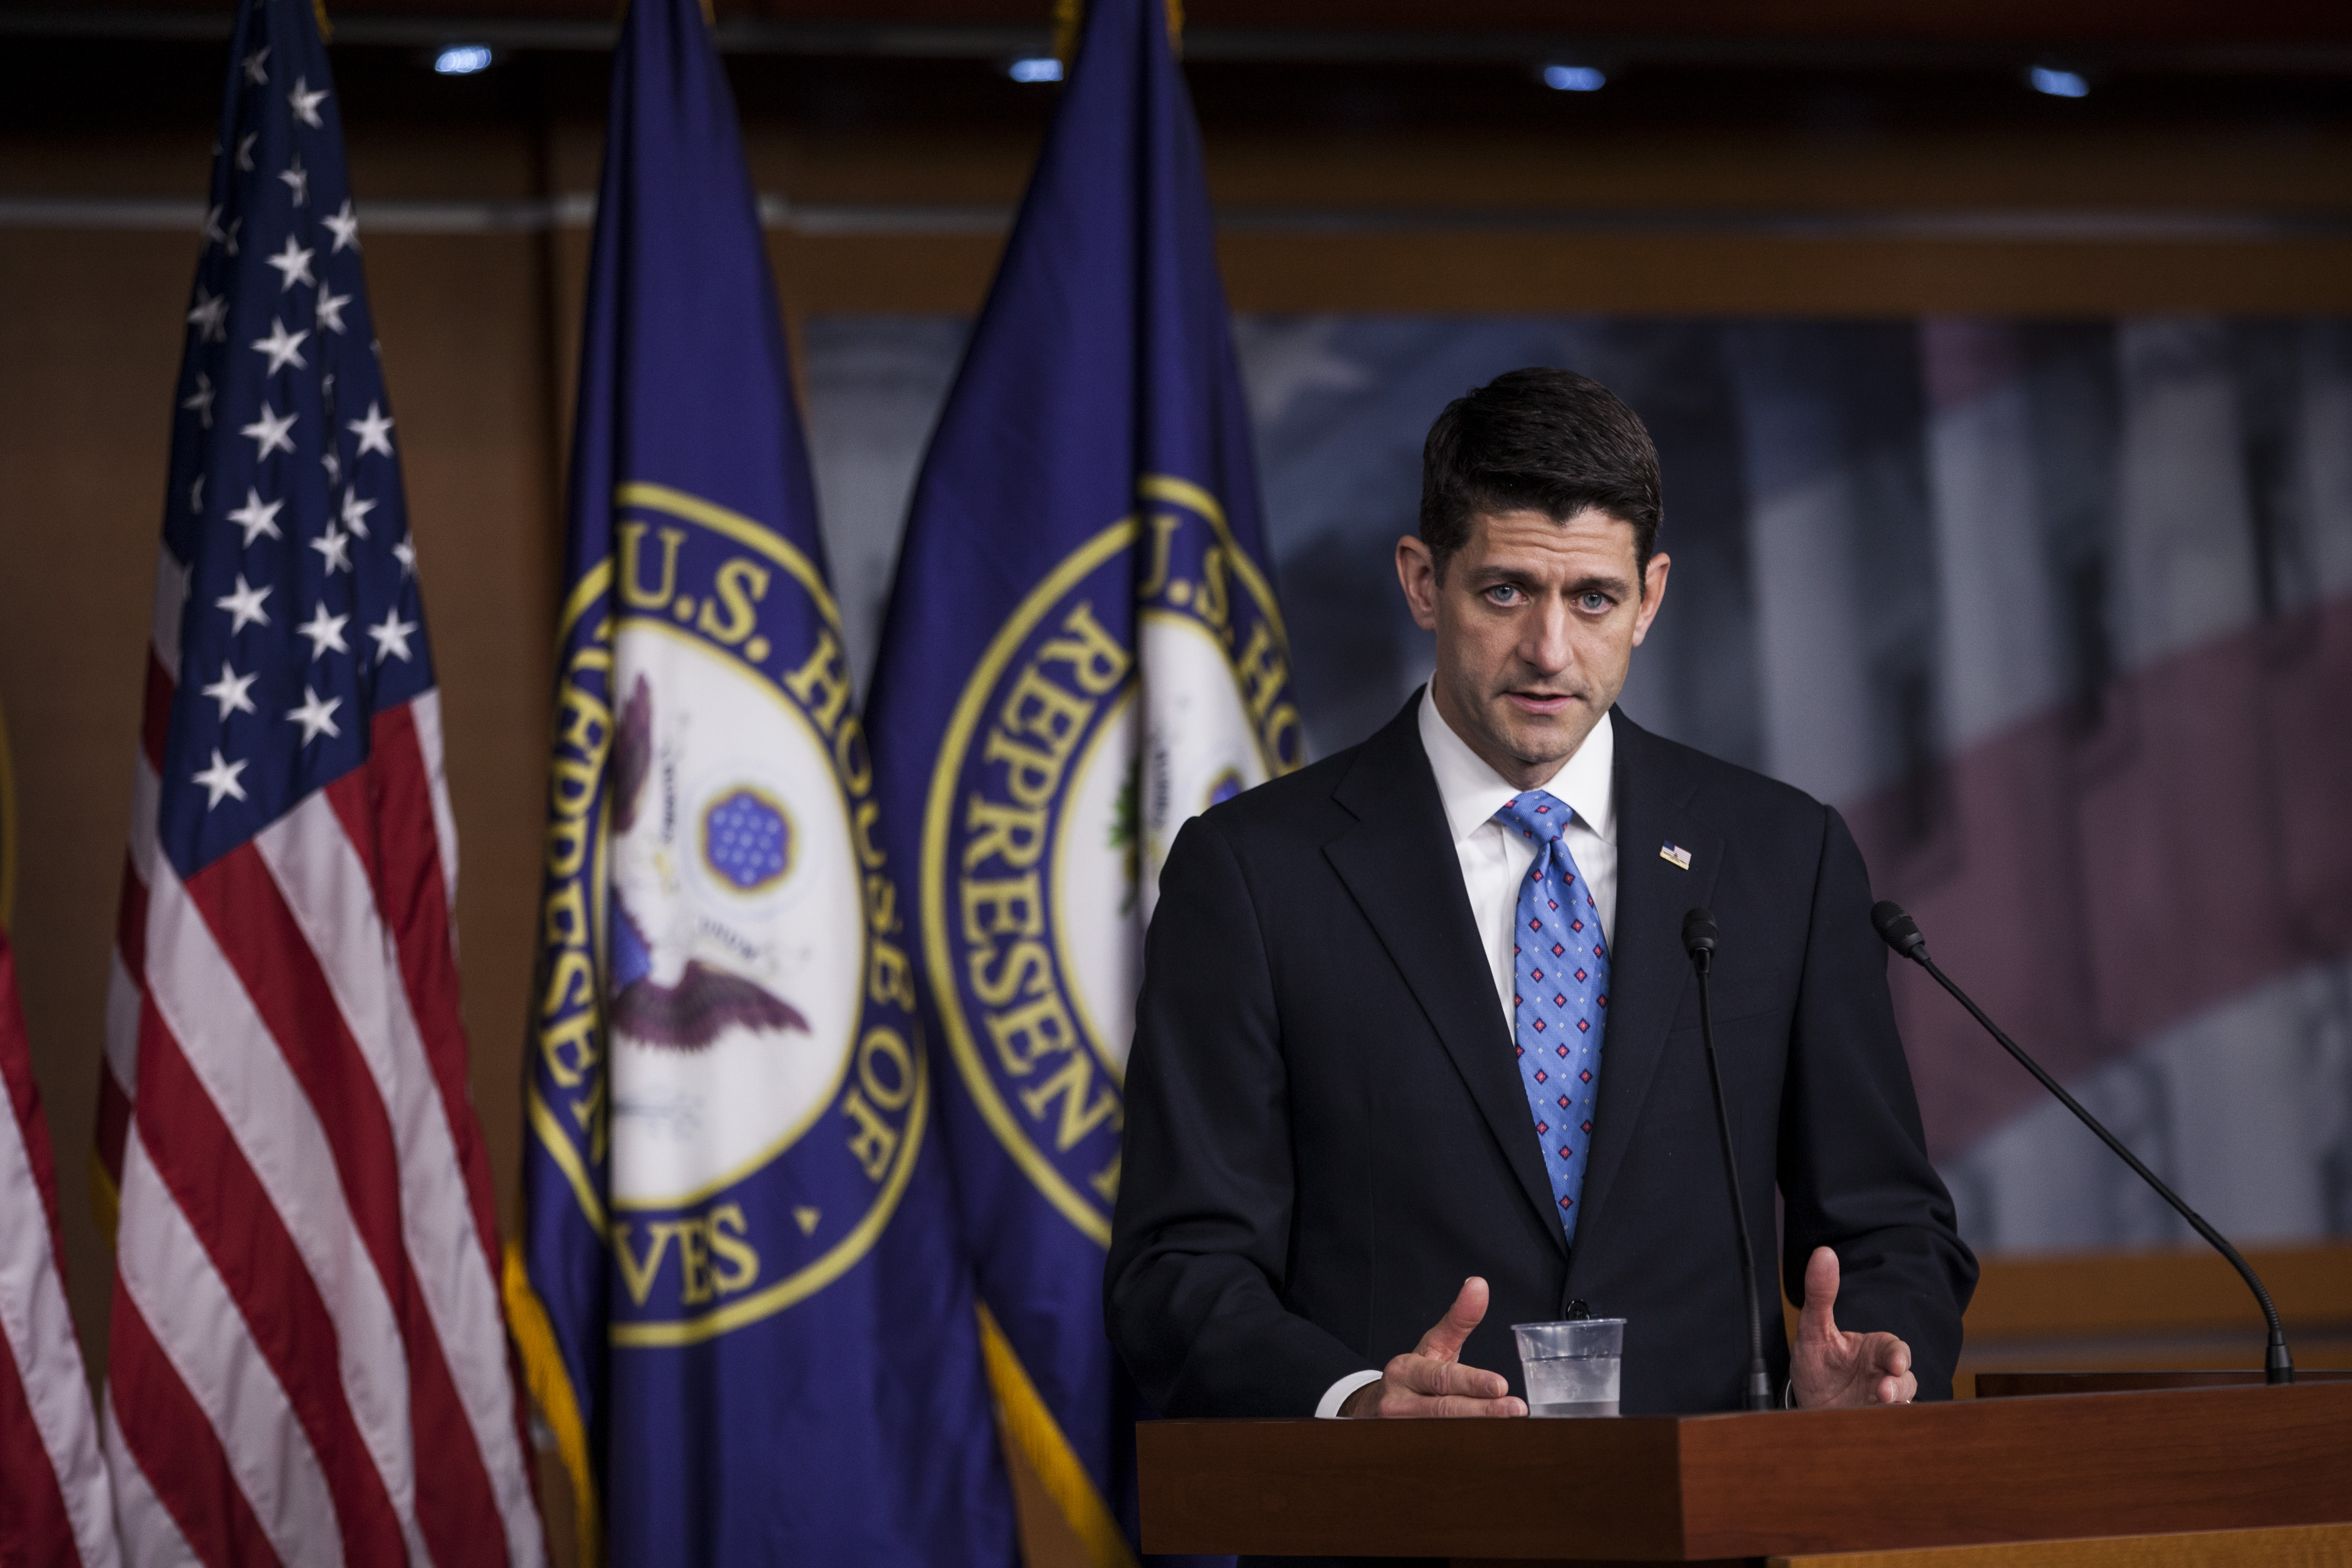 U.S. House Speaker Paul Ryan spoke about the Congressional Budget Office's scoring of the GOP's health-care legislation and the outlook for raising the U.S. debt ceiling.